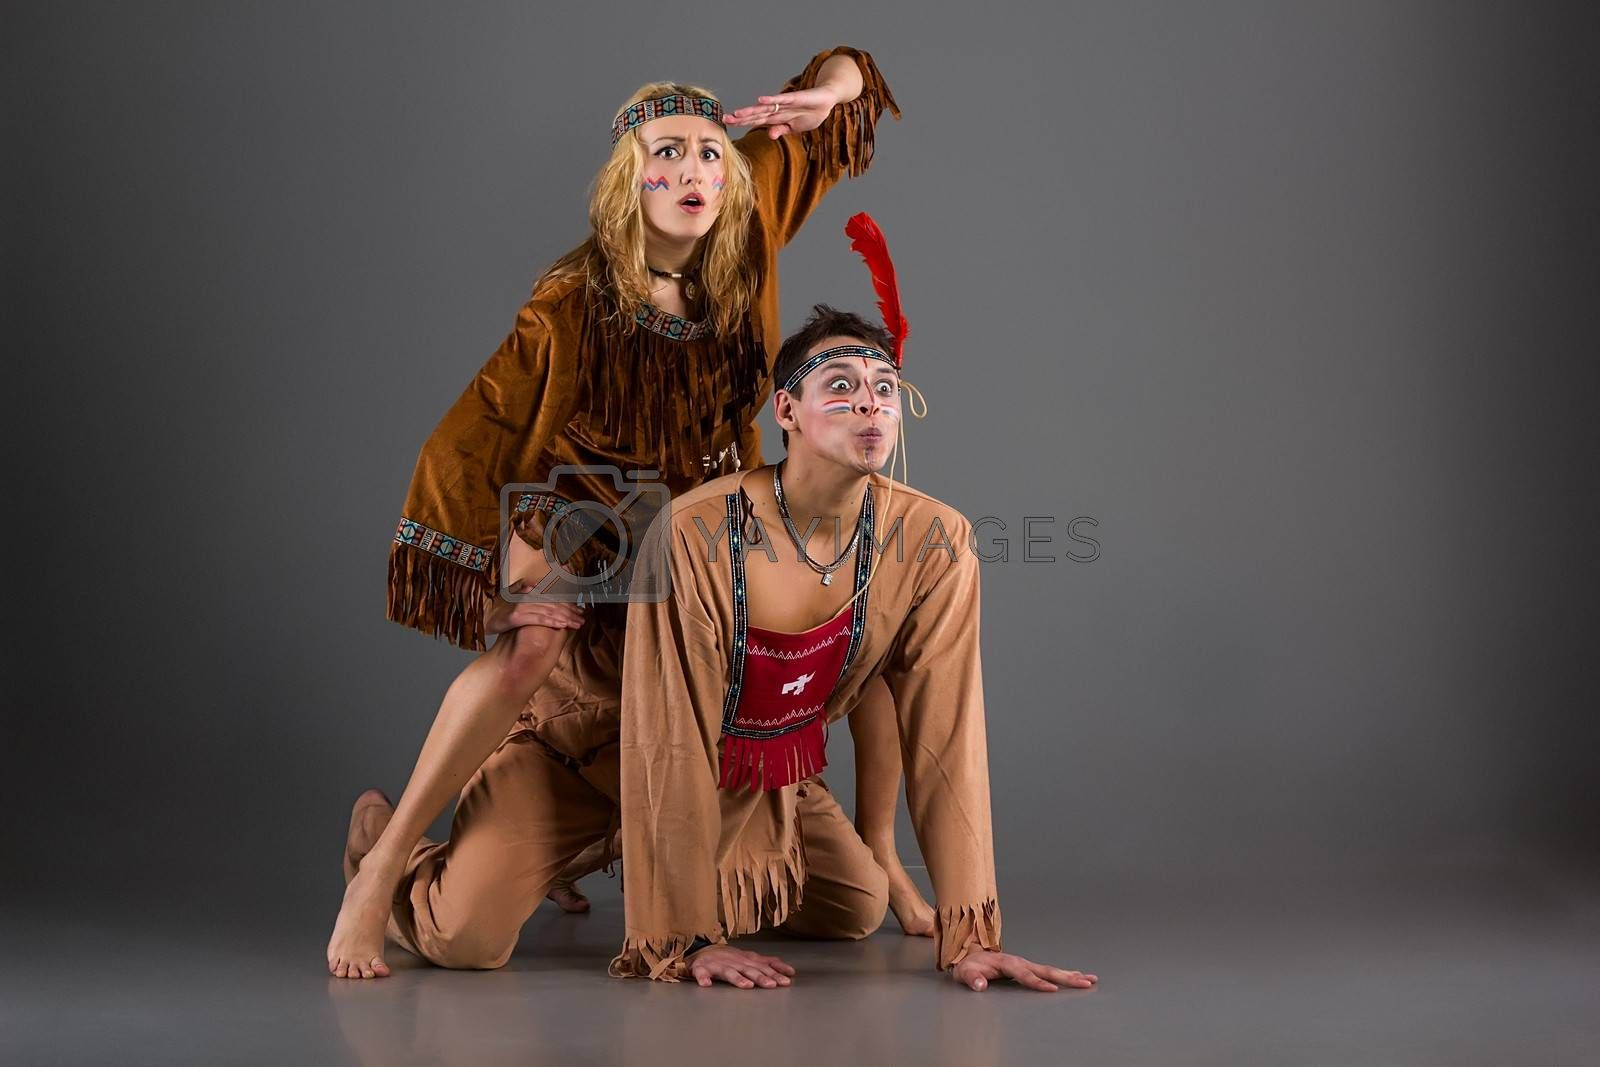 Man and wiman as american indian characters at studio